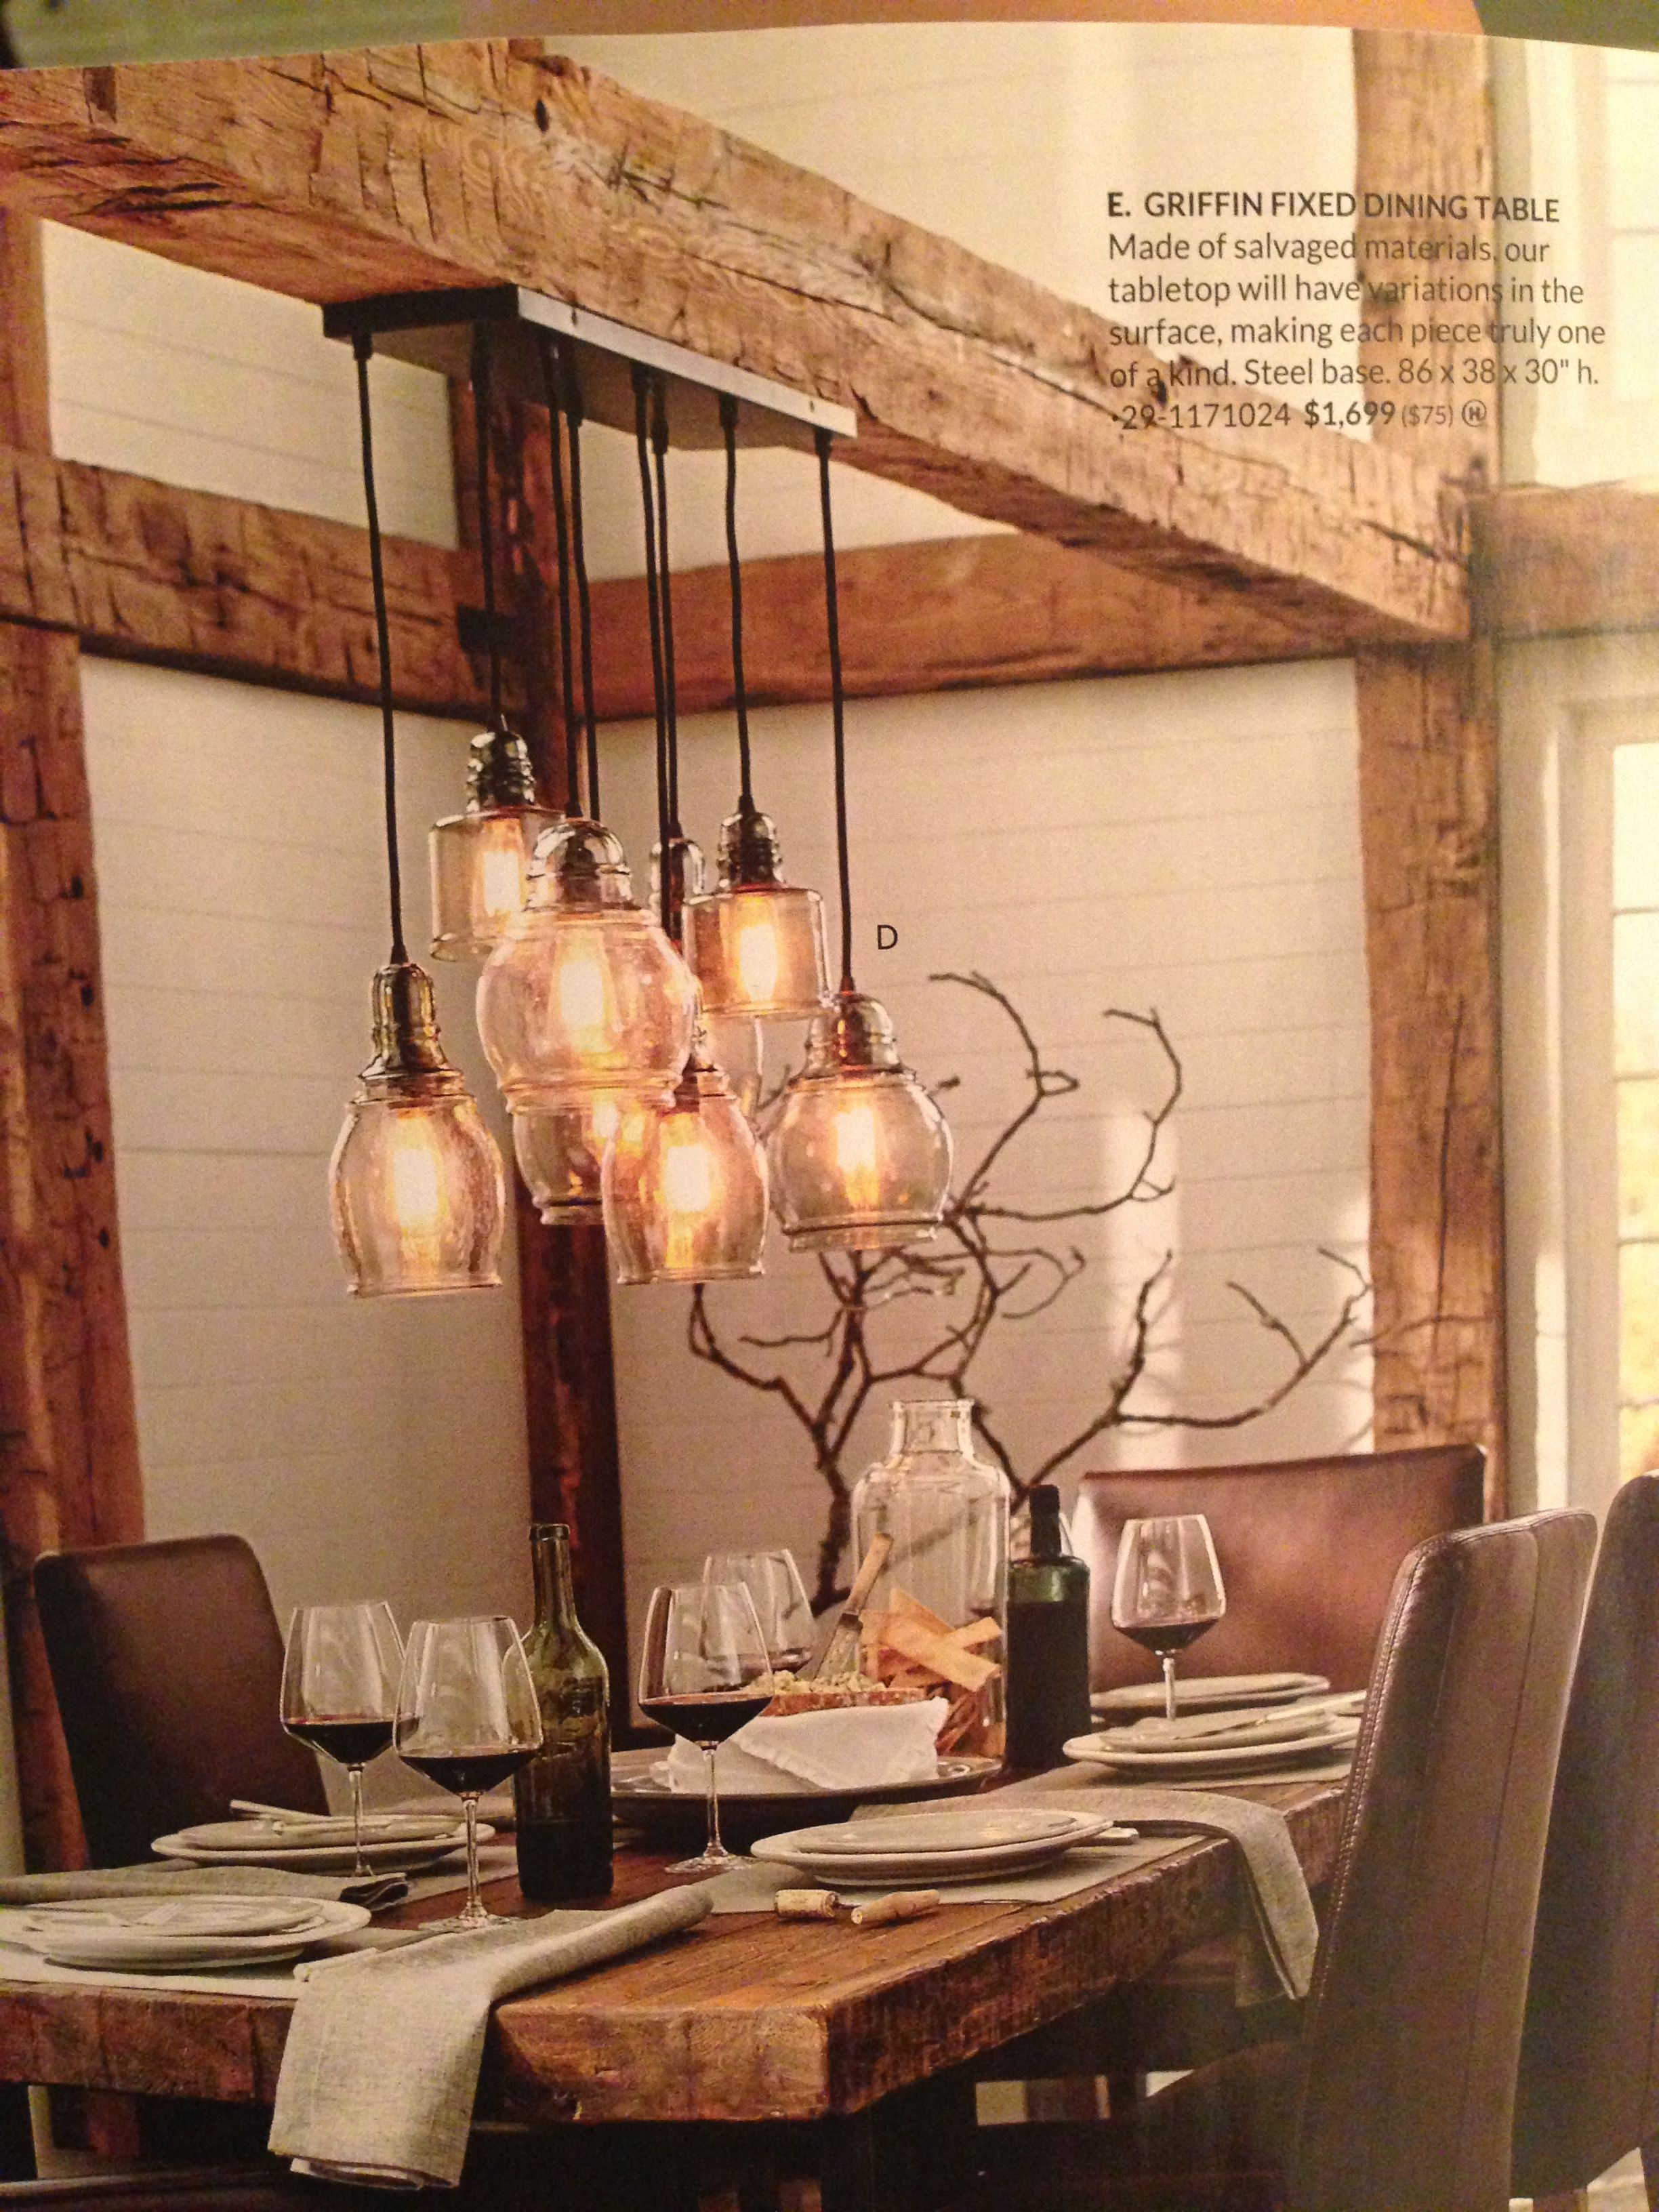 kitchen lights over table Love the rustic table and beamwork Kitchen Remodel Light Fixture over Table